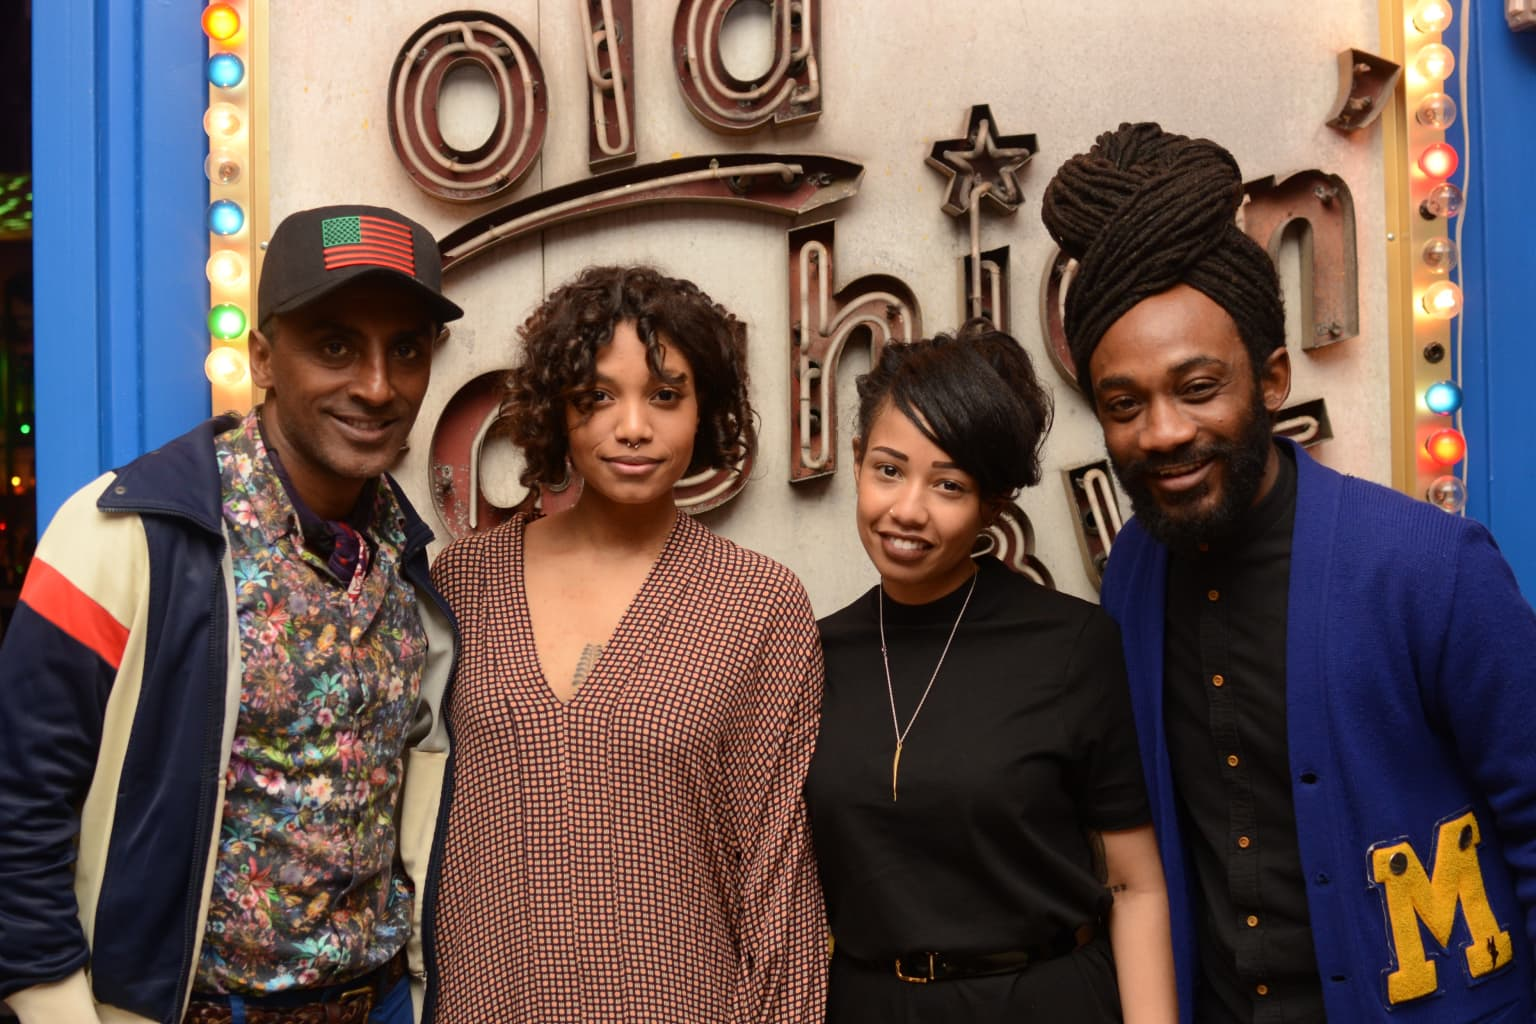 A Night in Harlem with The Starving Artist